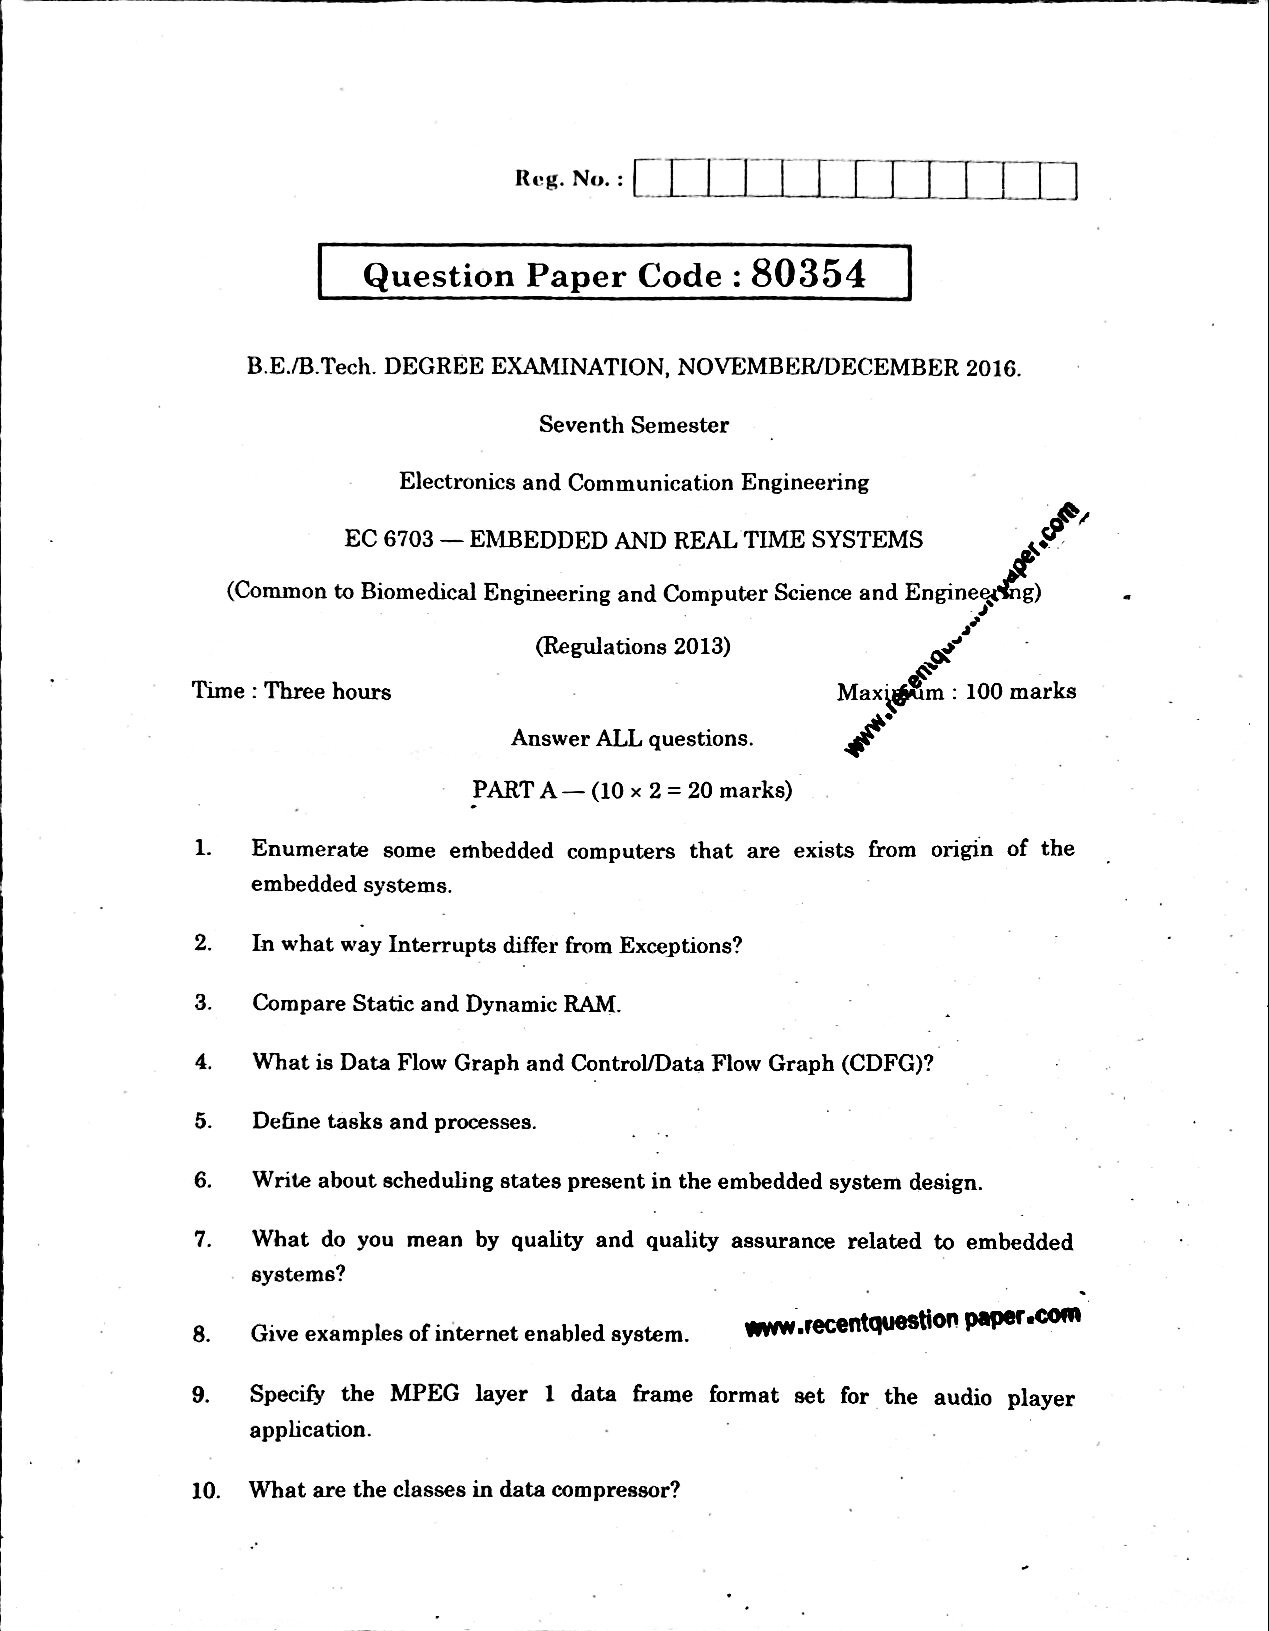 EC6703 Embedded And Real Time Systems Nov/Dec 2016 Questionpaper